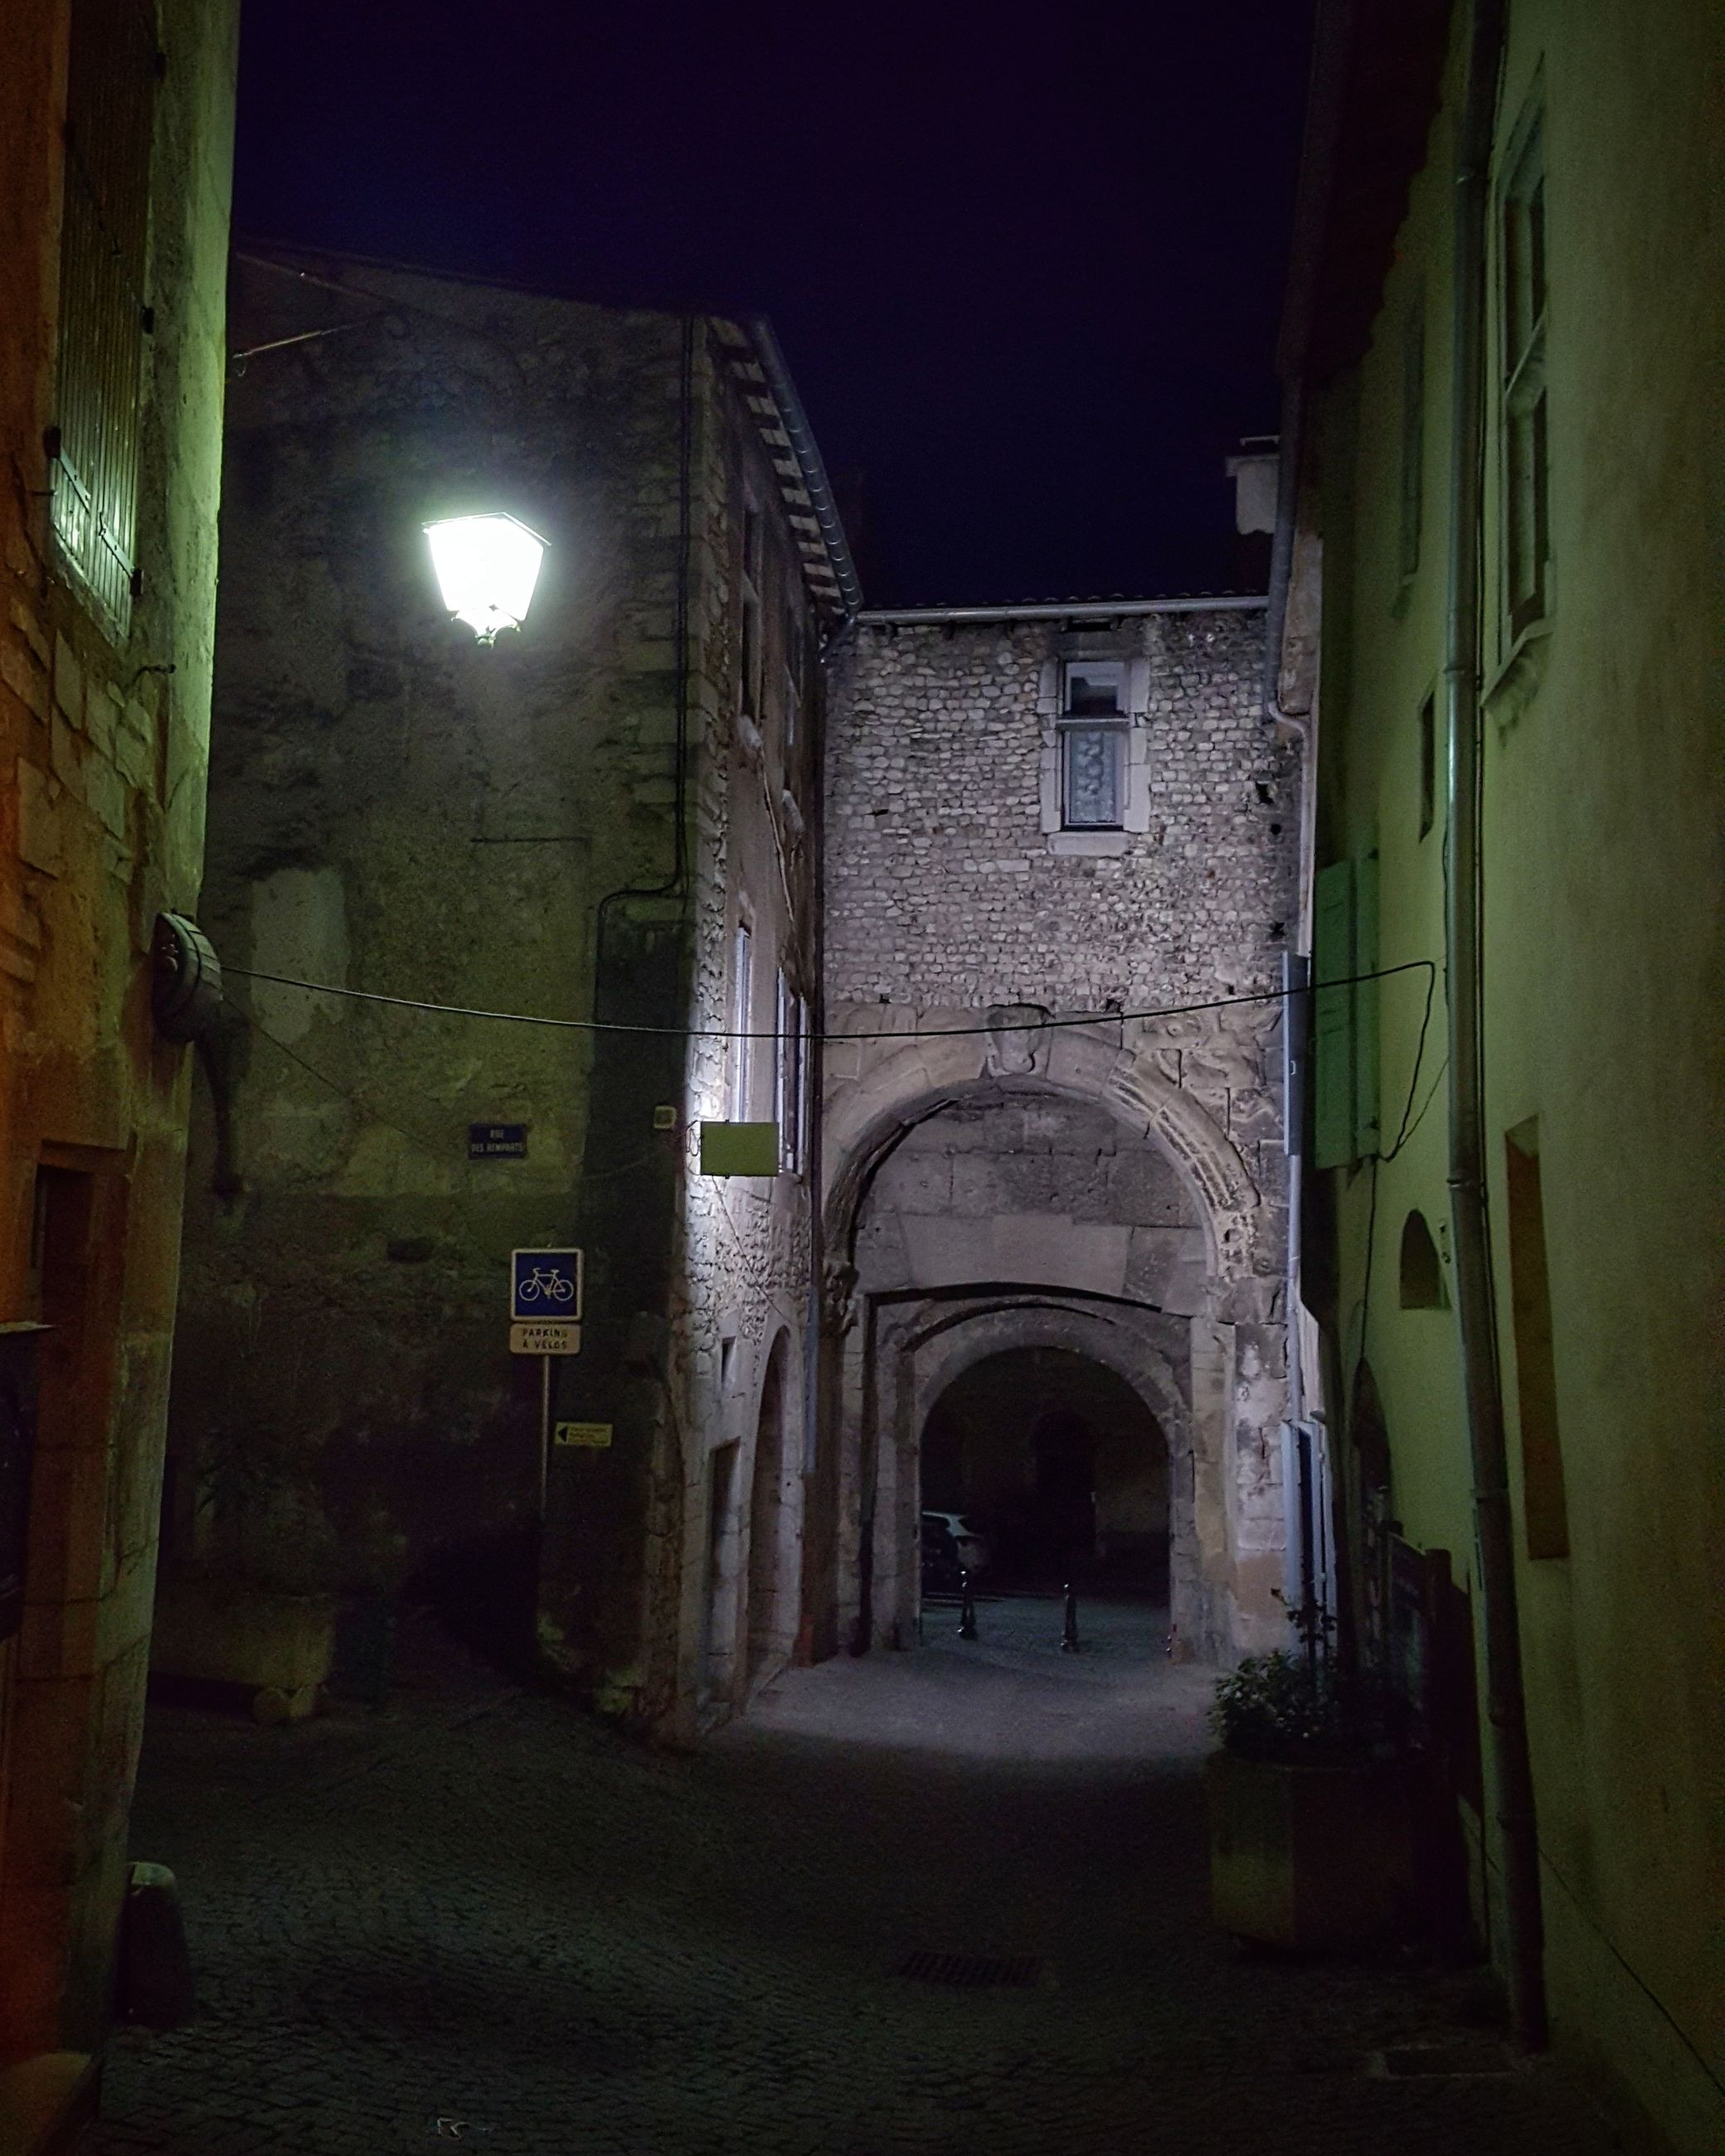 architecture, built structure, night, illuminated, arch, the way forward, building exterior, no people, indoors